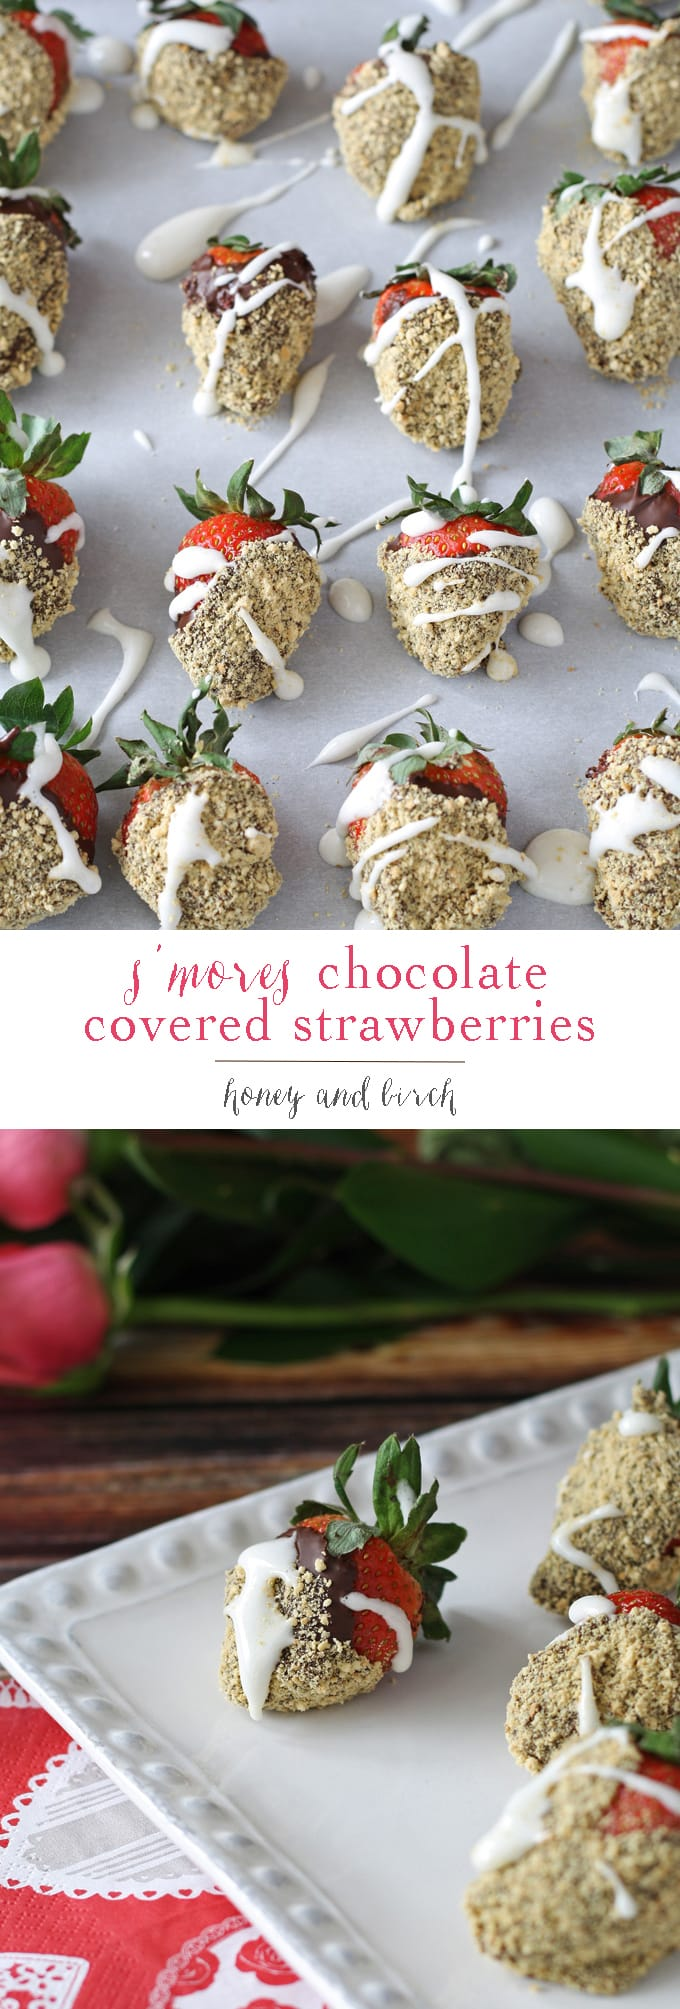 S'mores chocolate covered strawberries are the perfect dessert for Valentine's Day or treat for any day. Easy to make your own at home! | honeyandbirch.com